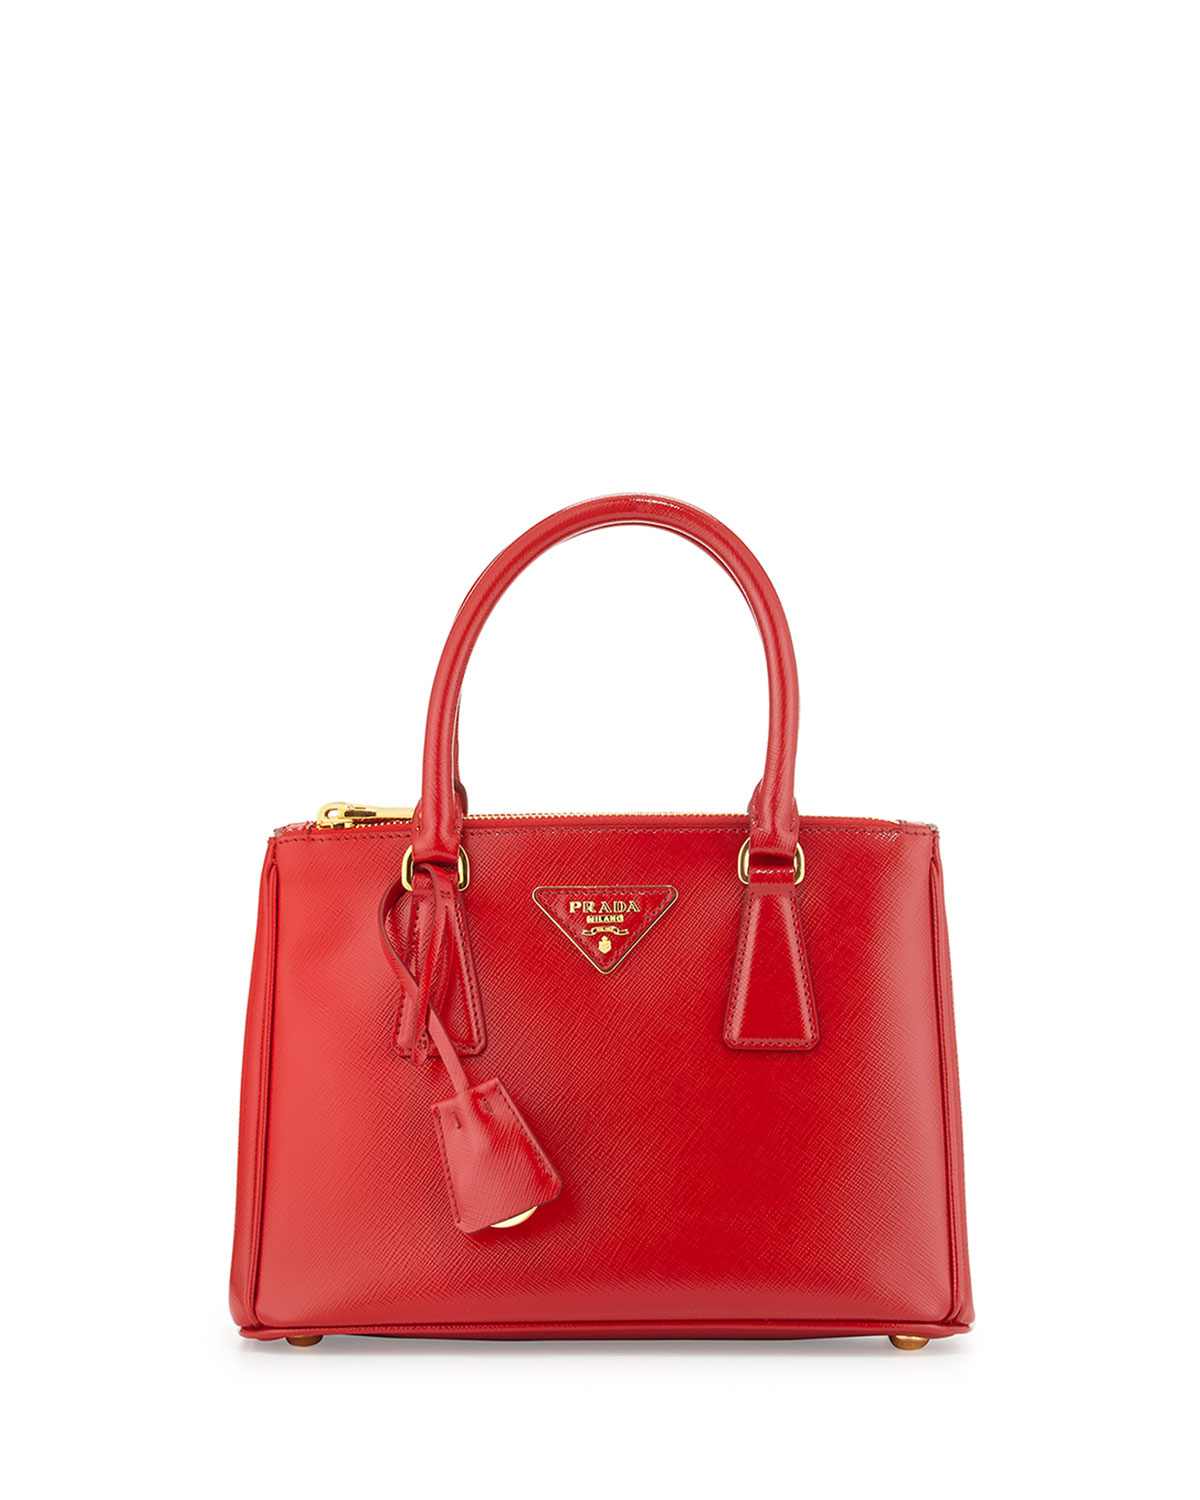 Saffiano Vernice Mini Double Zip Tote Bag Red Rosso